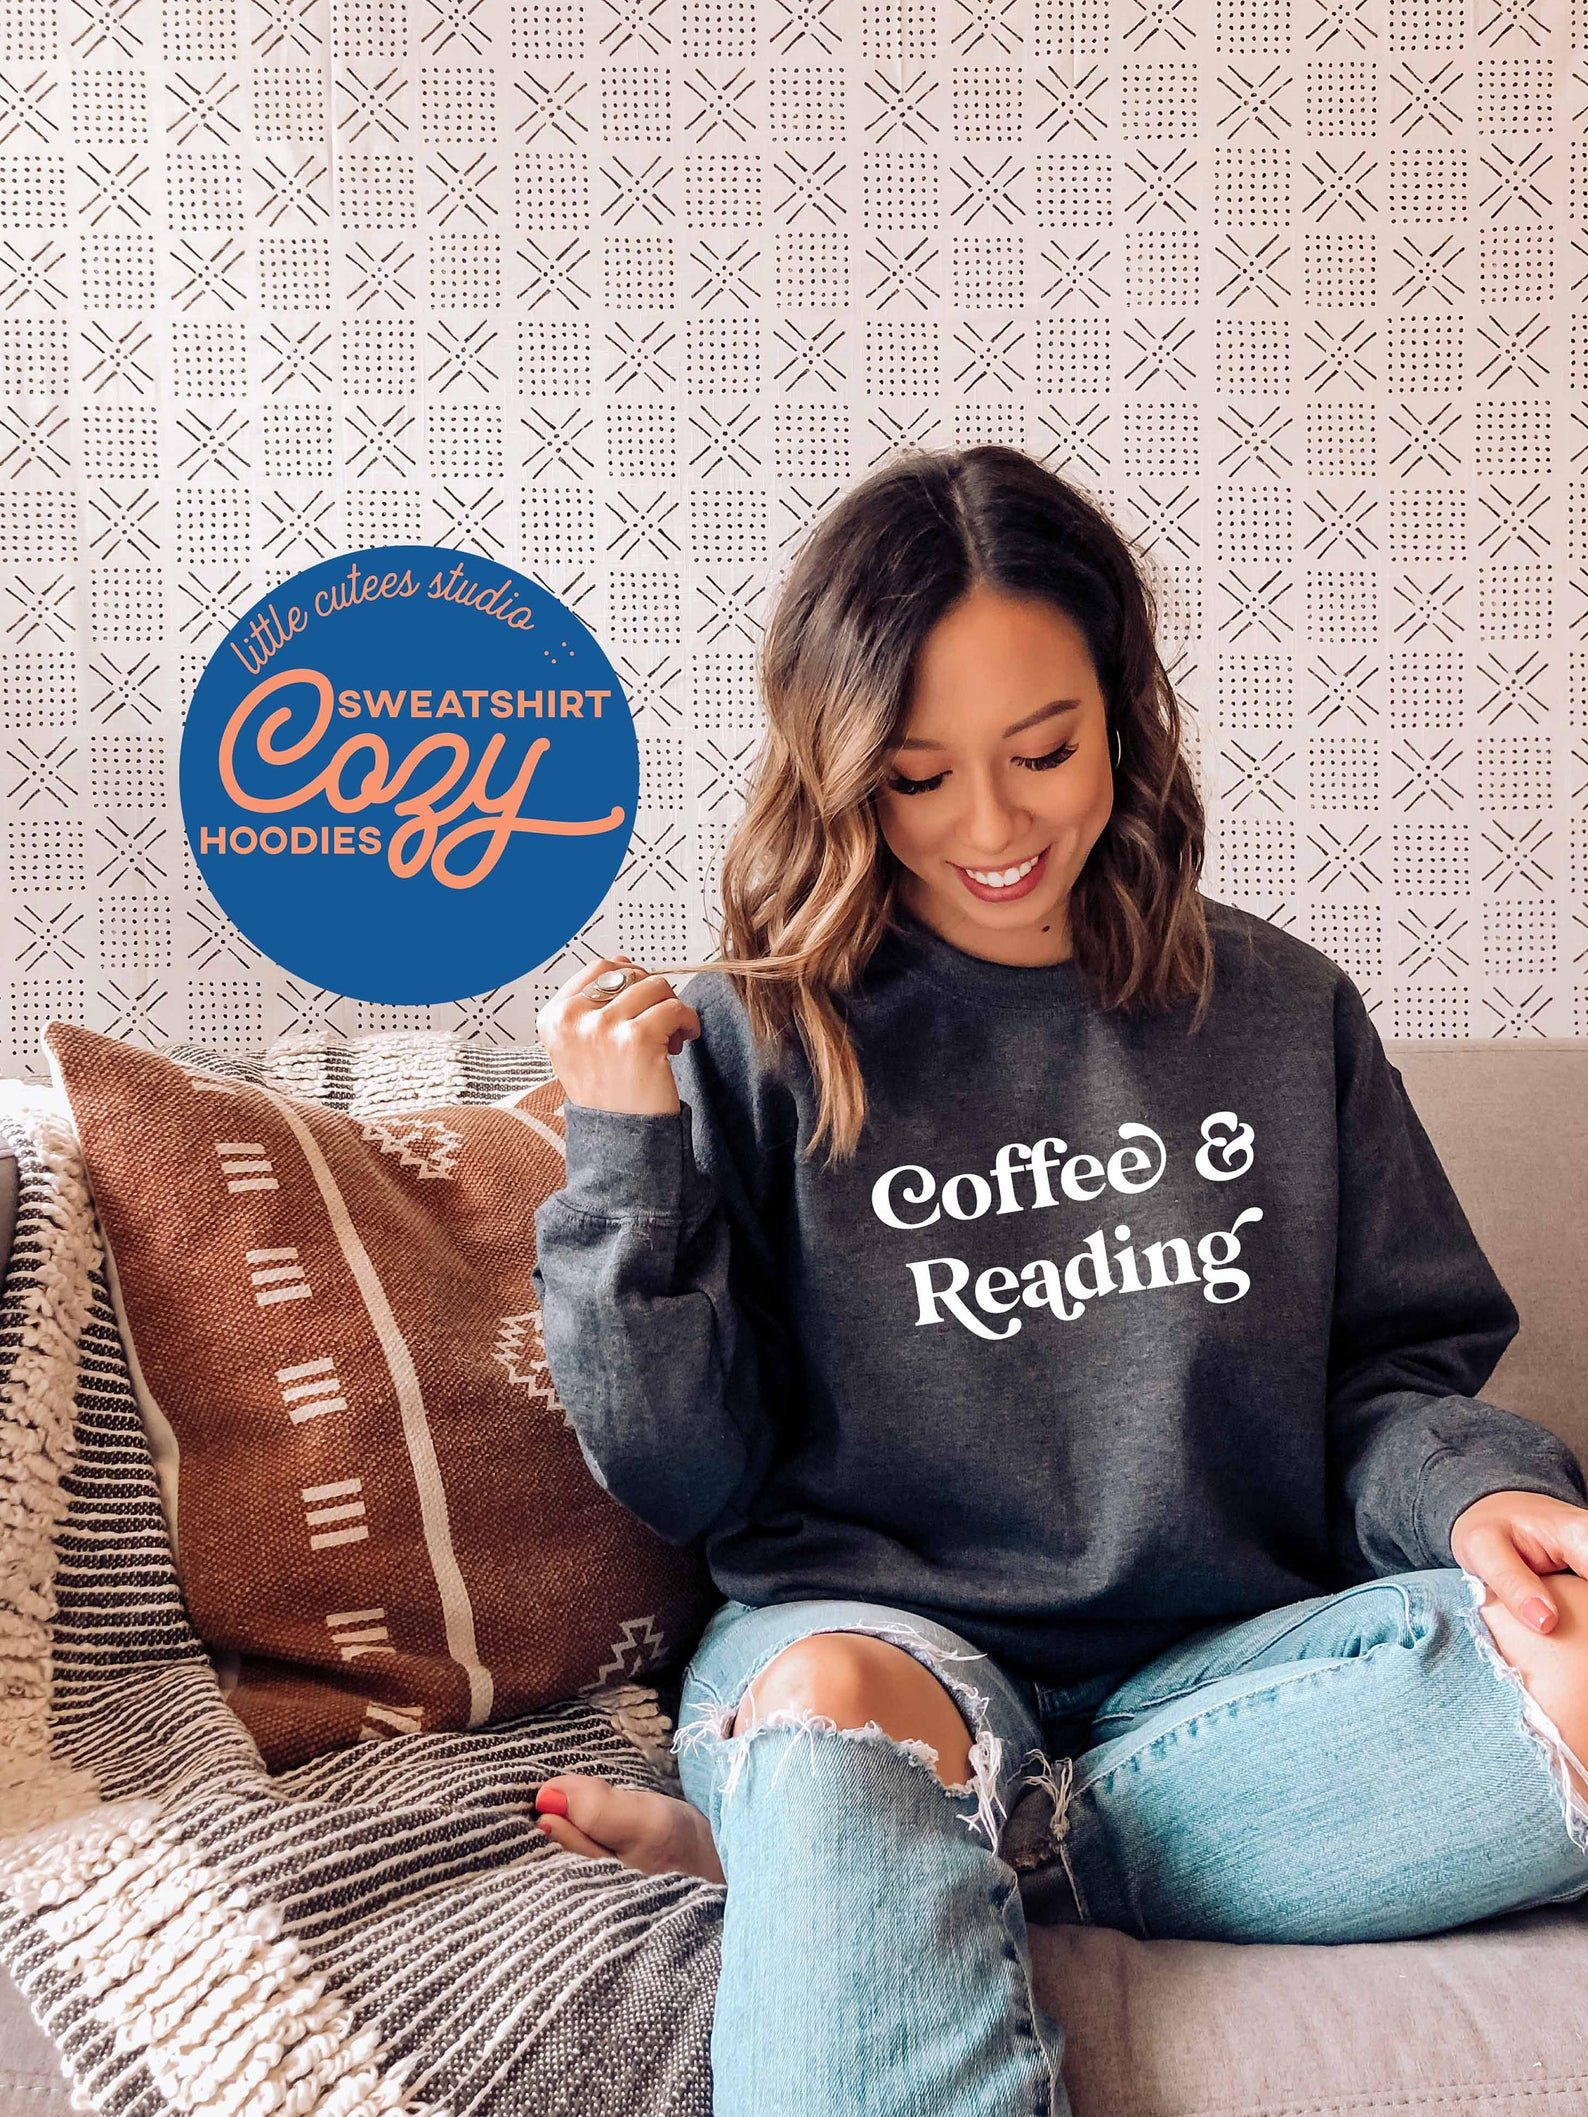 """Image of a person in a gray sweatshirt reading  """"coffee & reading"""""""